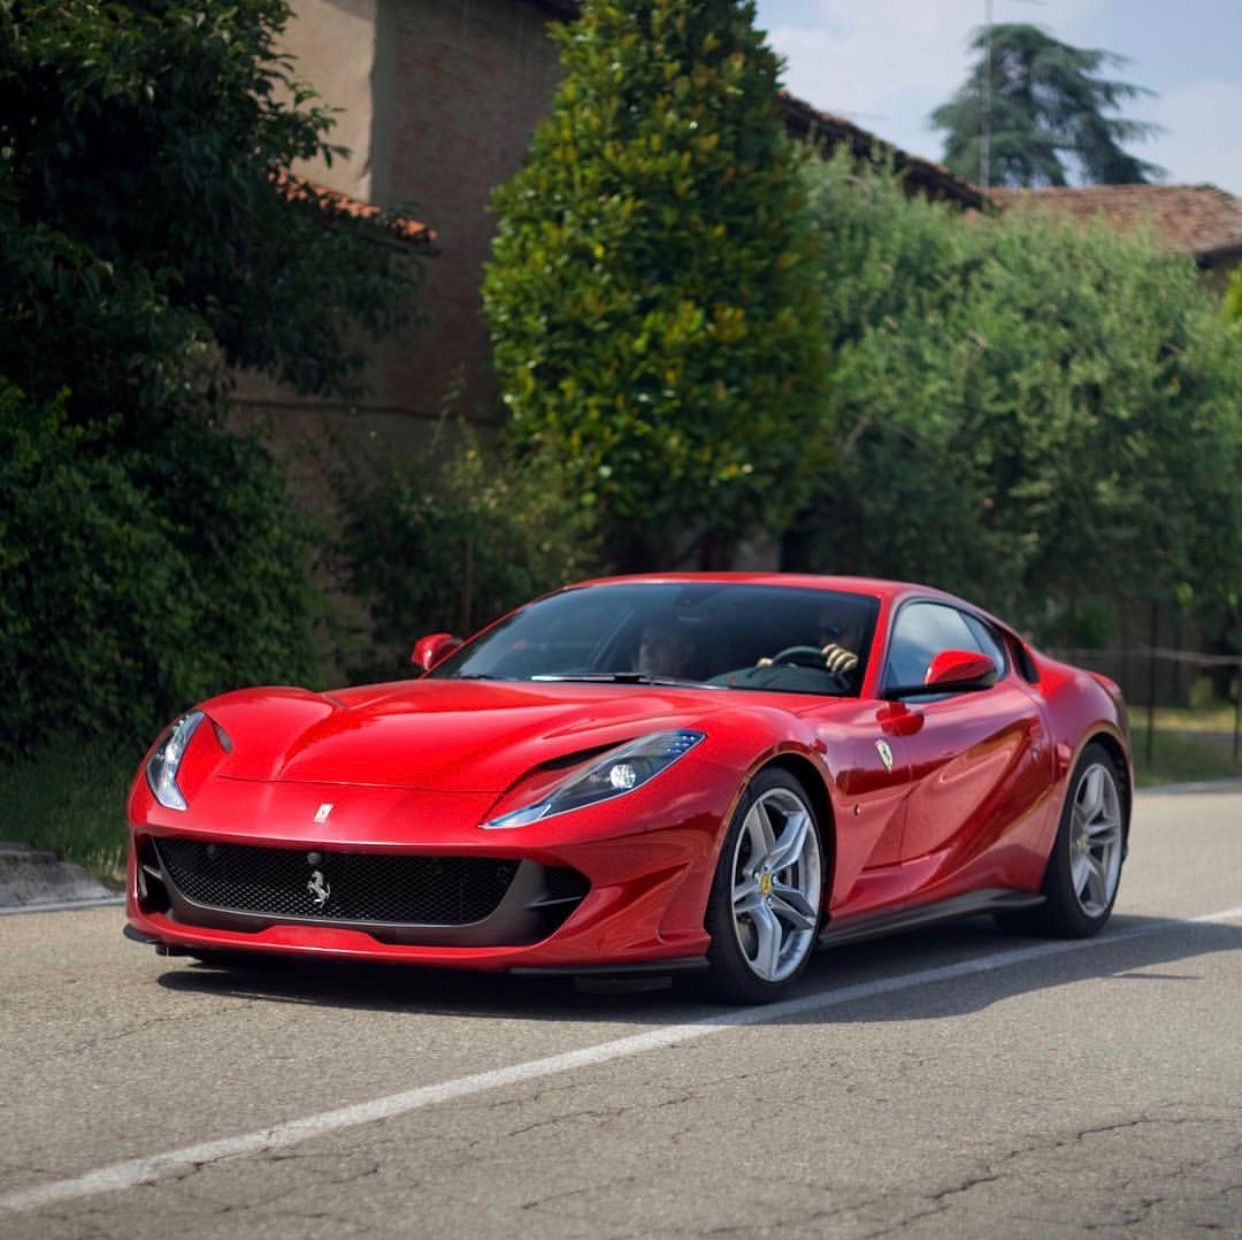 Ferrari 812 Superfast Painted In Rosso Settantanni Photo Taken By